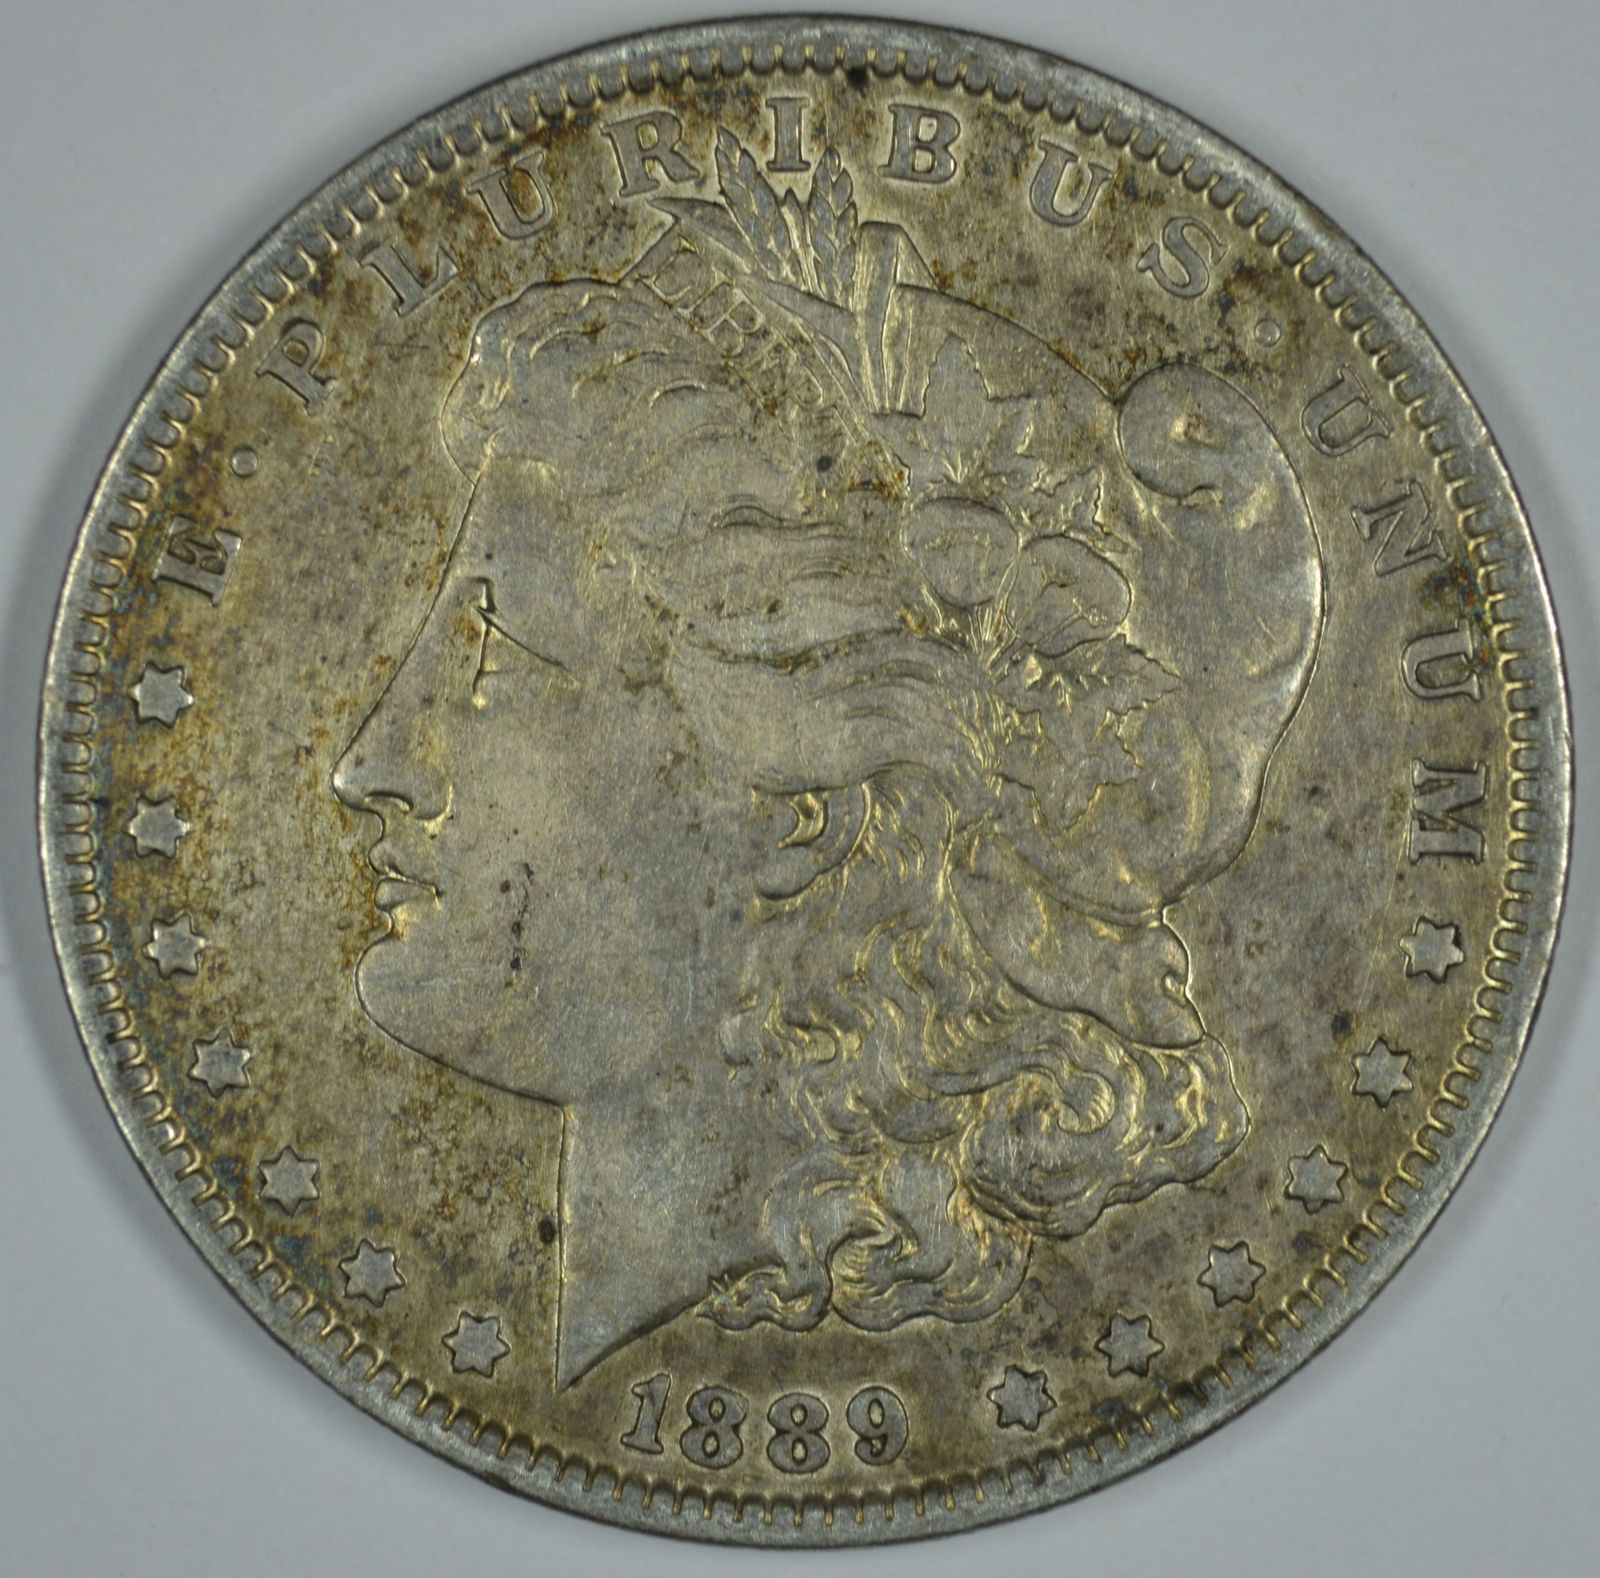 Primary image for 1889 O Morgan circulated silver dollar VG details